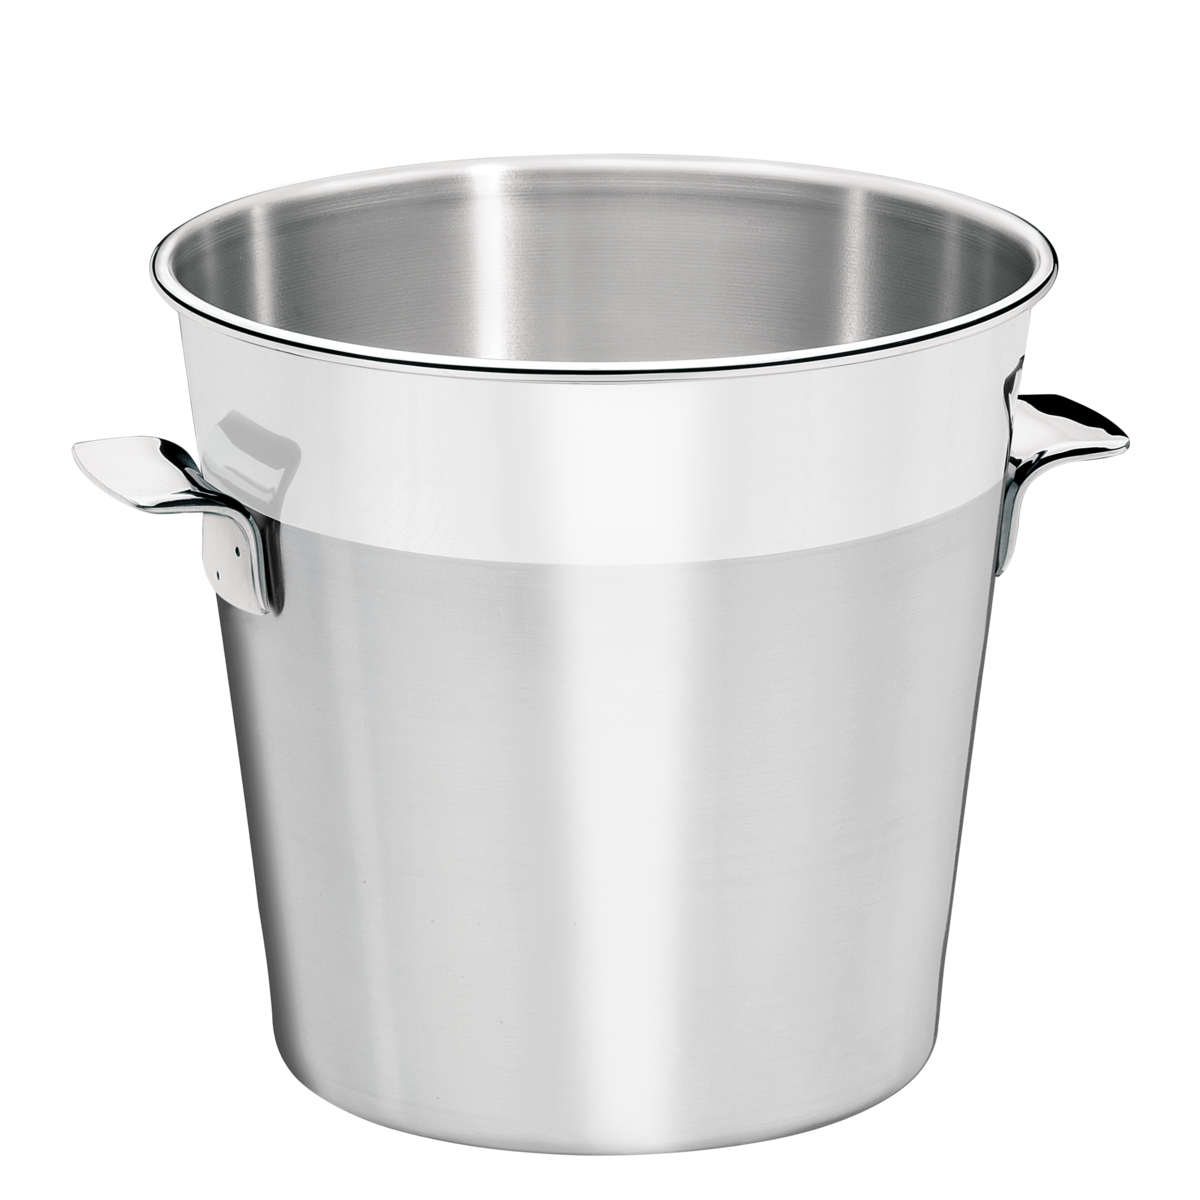 Tramontina Cosmos Matte Stainless Steel Ice Bucket With Shiny Rim 14 Cm And 1 8 L Tramontina